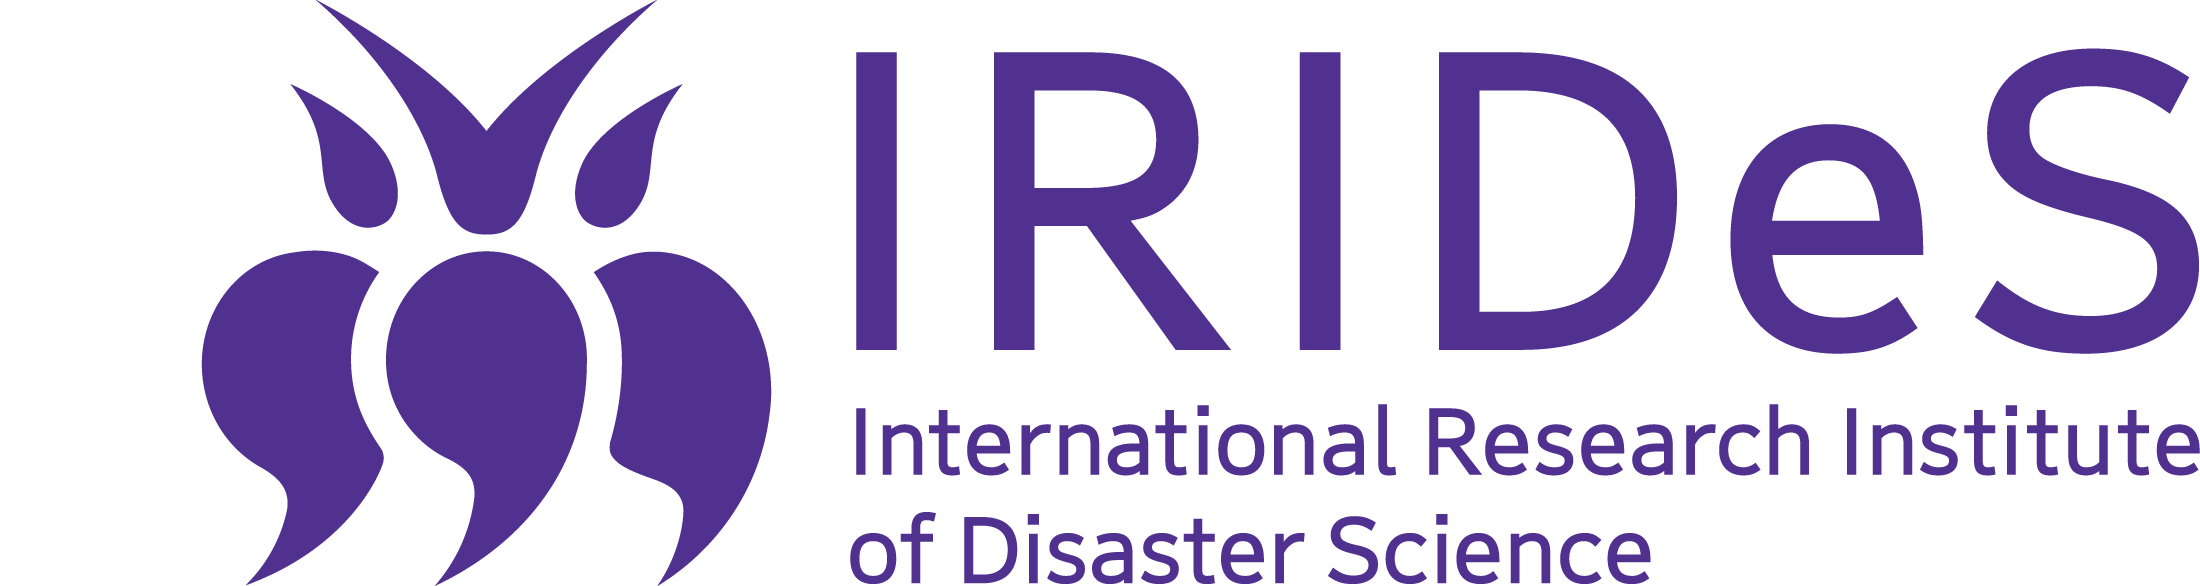 International Research Institute of Disaster Science (IRIDeS), Japan